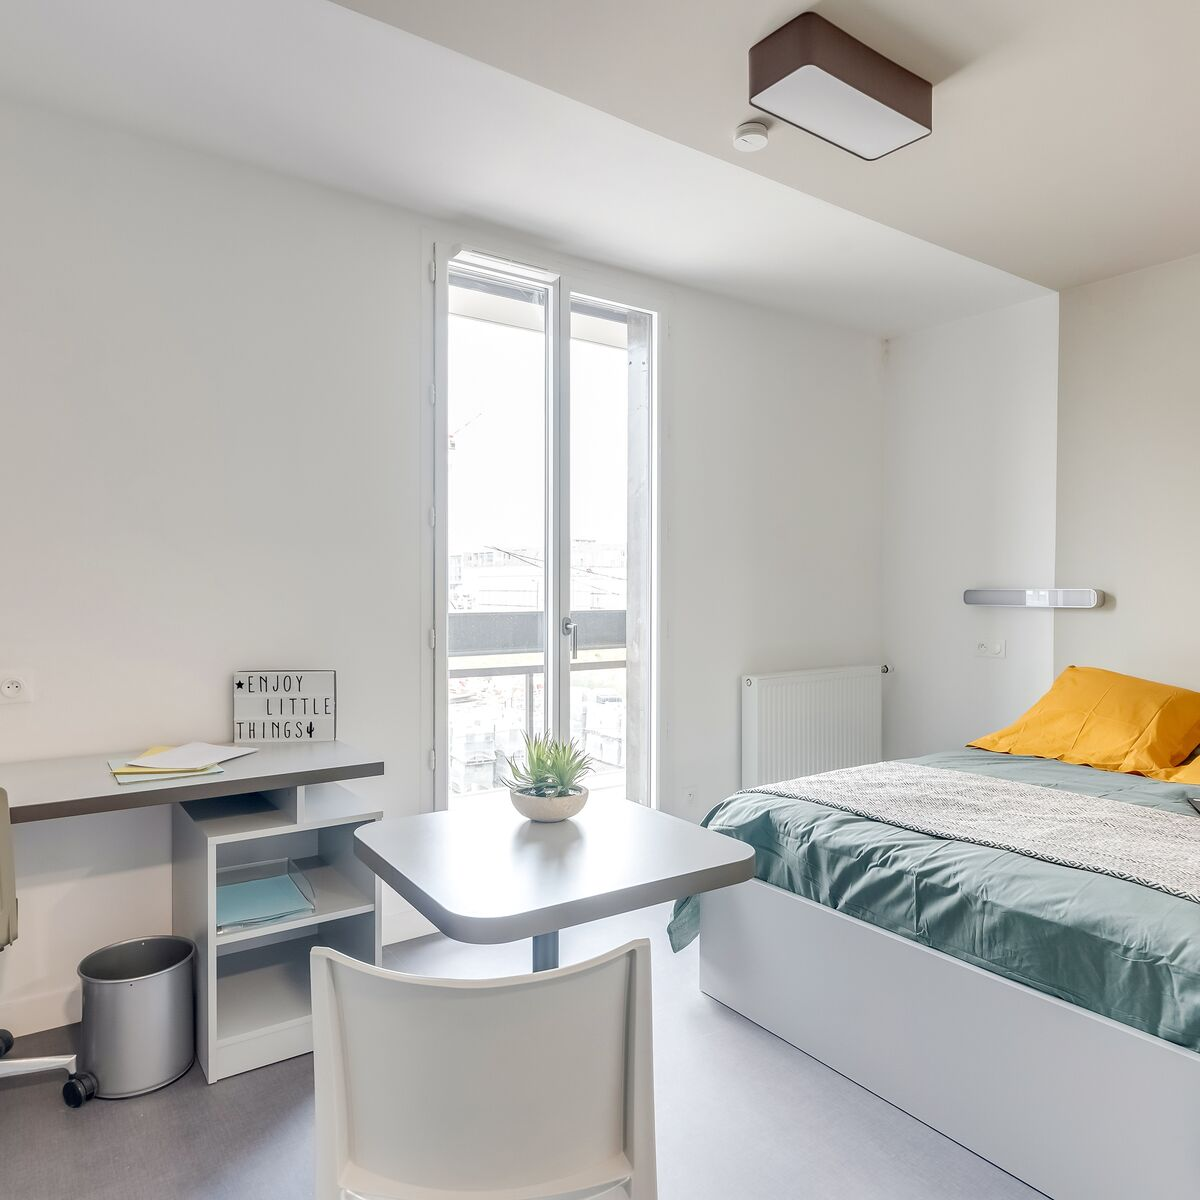 My student residence in Paris-Saclay